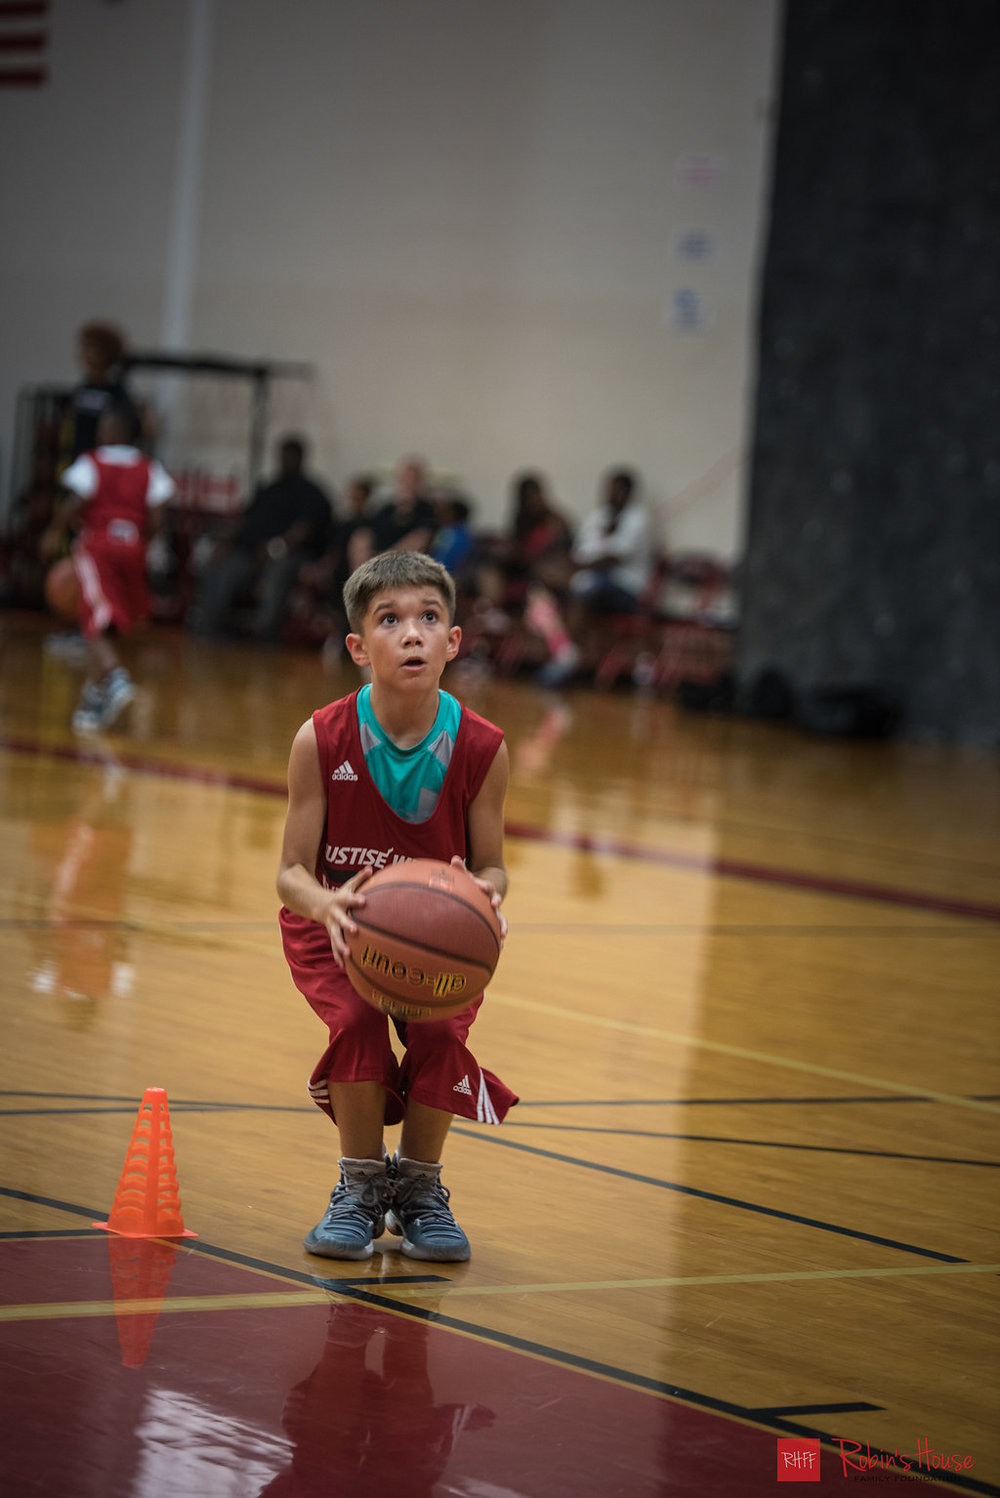 rhff_basketball_clinic_sunday-23.jpg